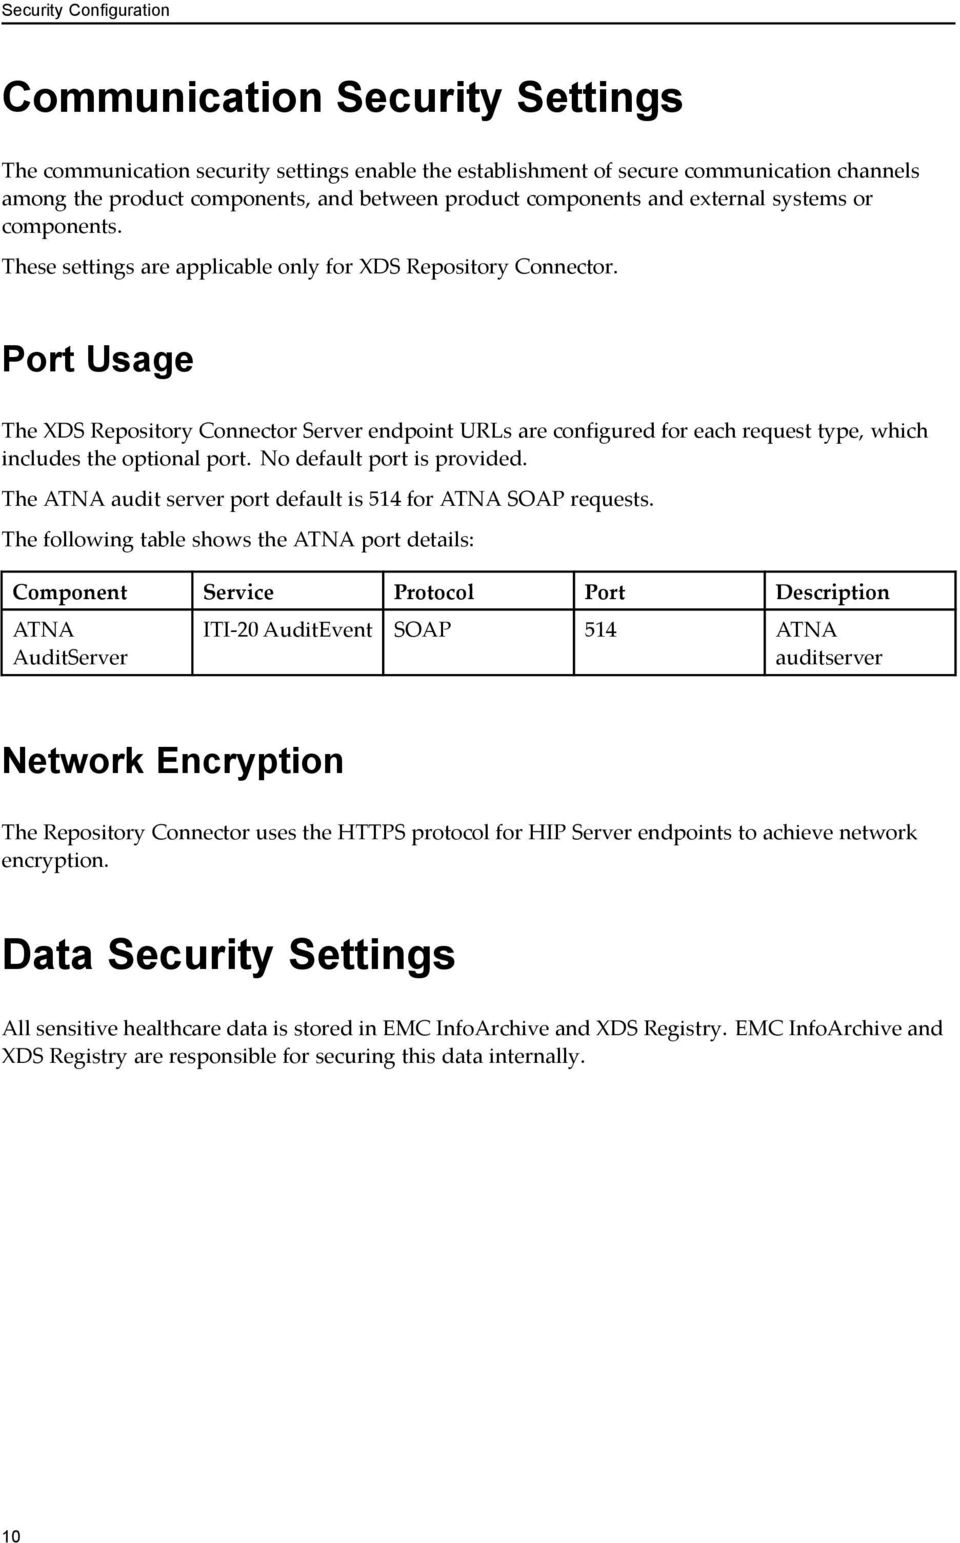 Port Usage The XDS Repository Connector Server endpoint URLs are configured for each request type, which includes the optional port. No default port is provided.